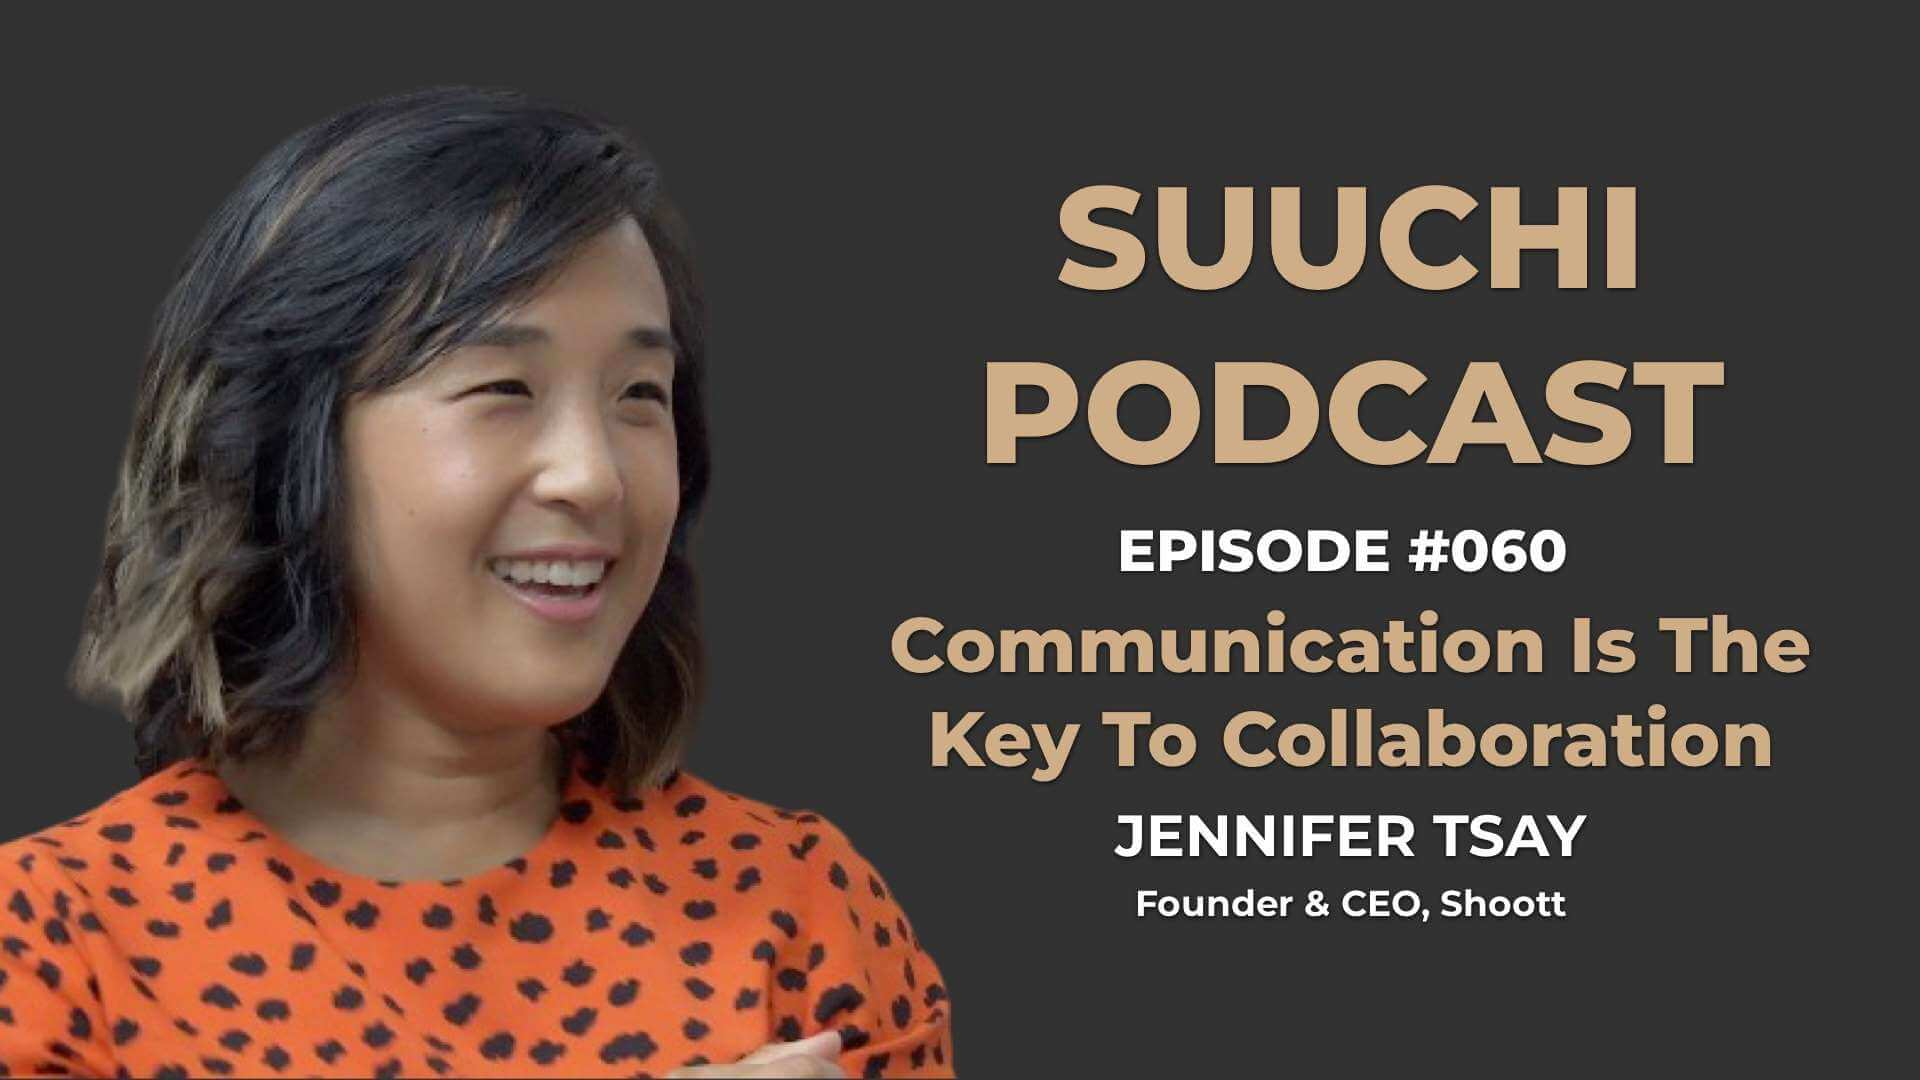 Communication is Key - Jennifer Tsay | Suuchi Podcast #60